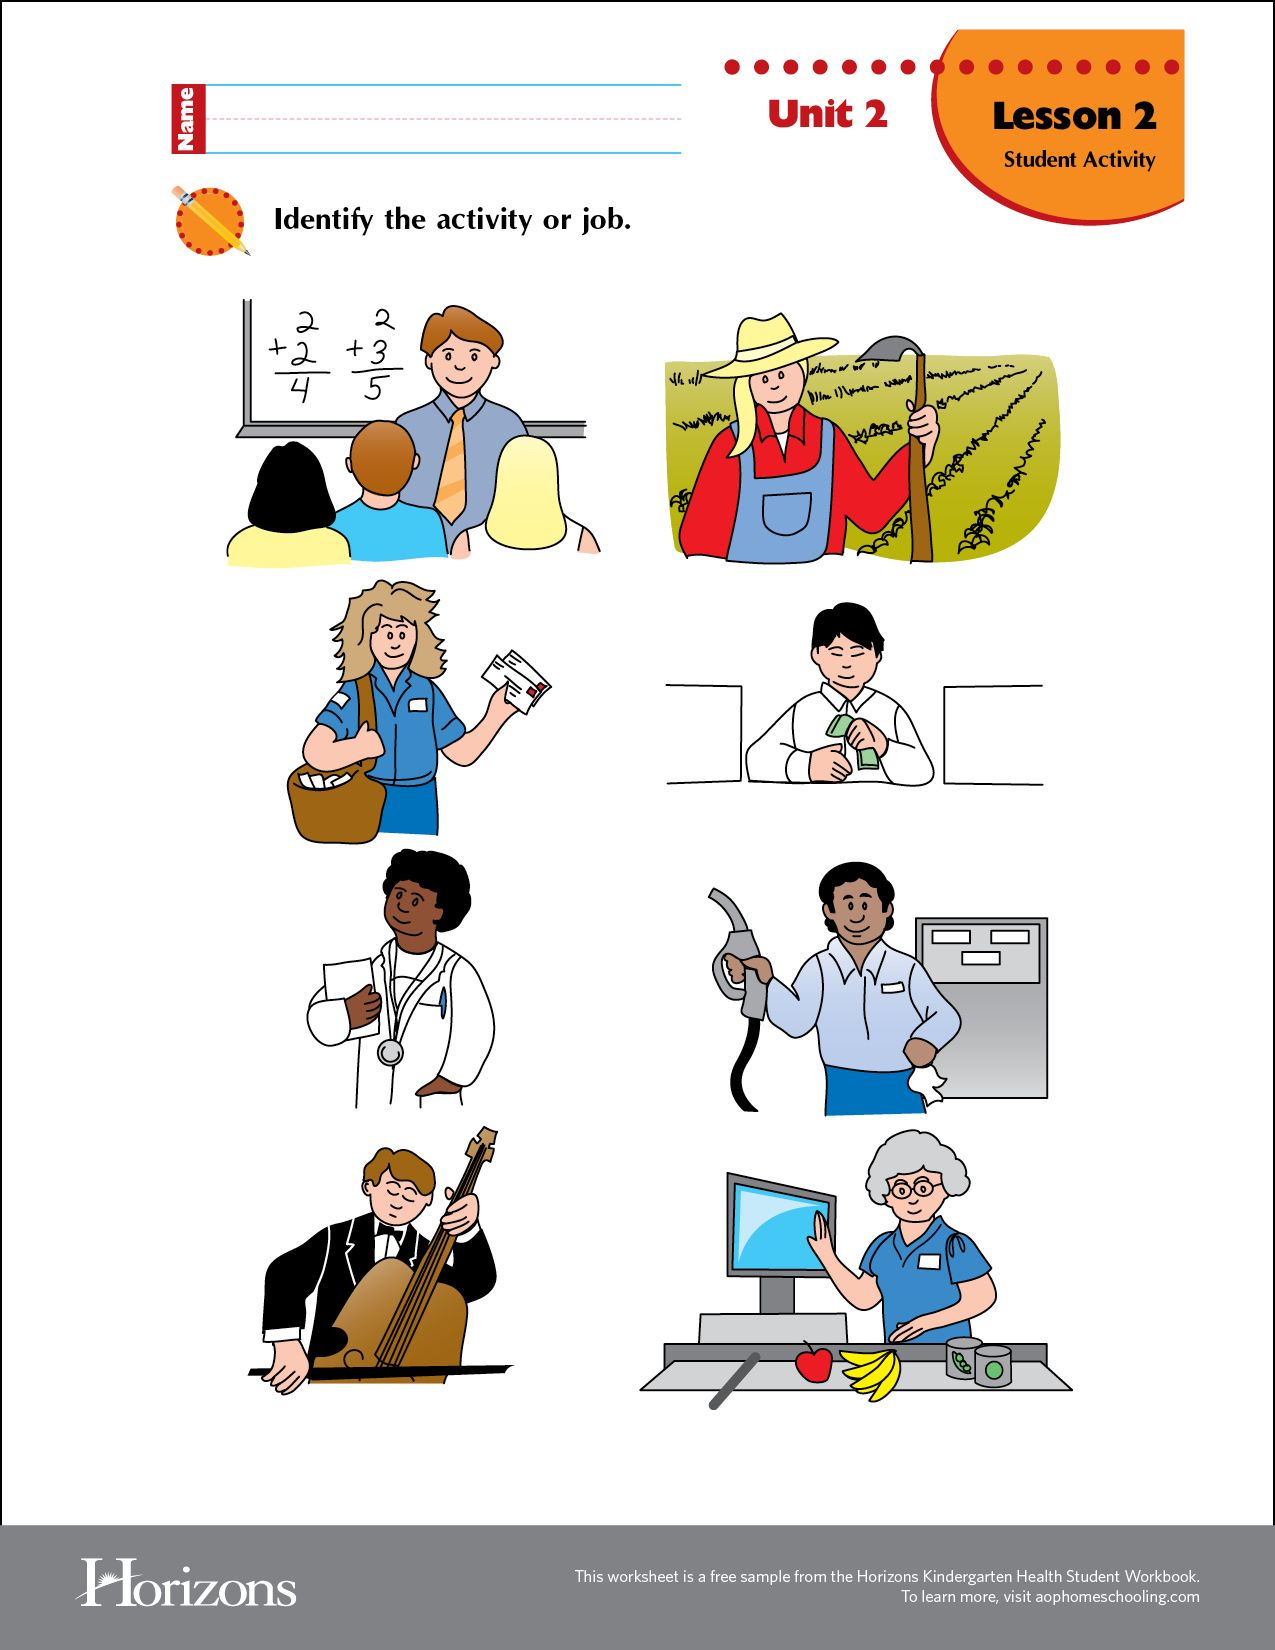 Horizons Preschool Sample Worksheet Curriculum Download